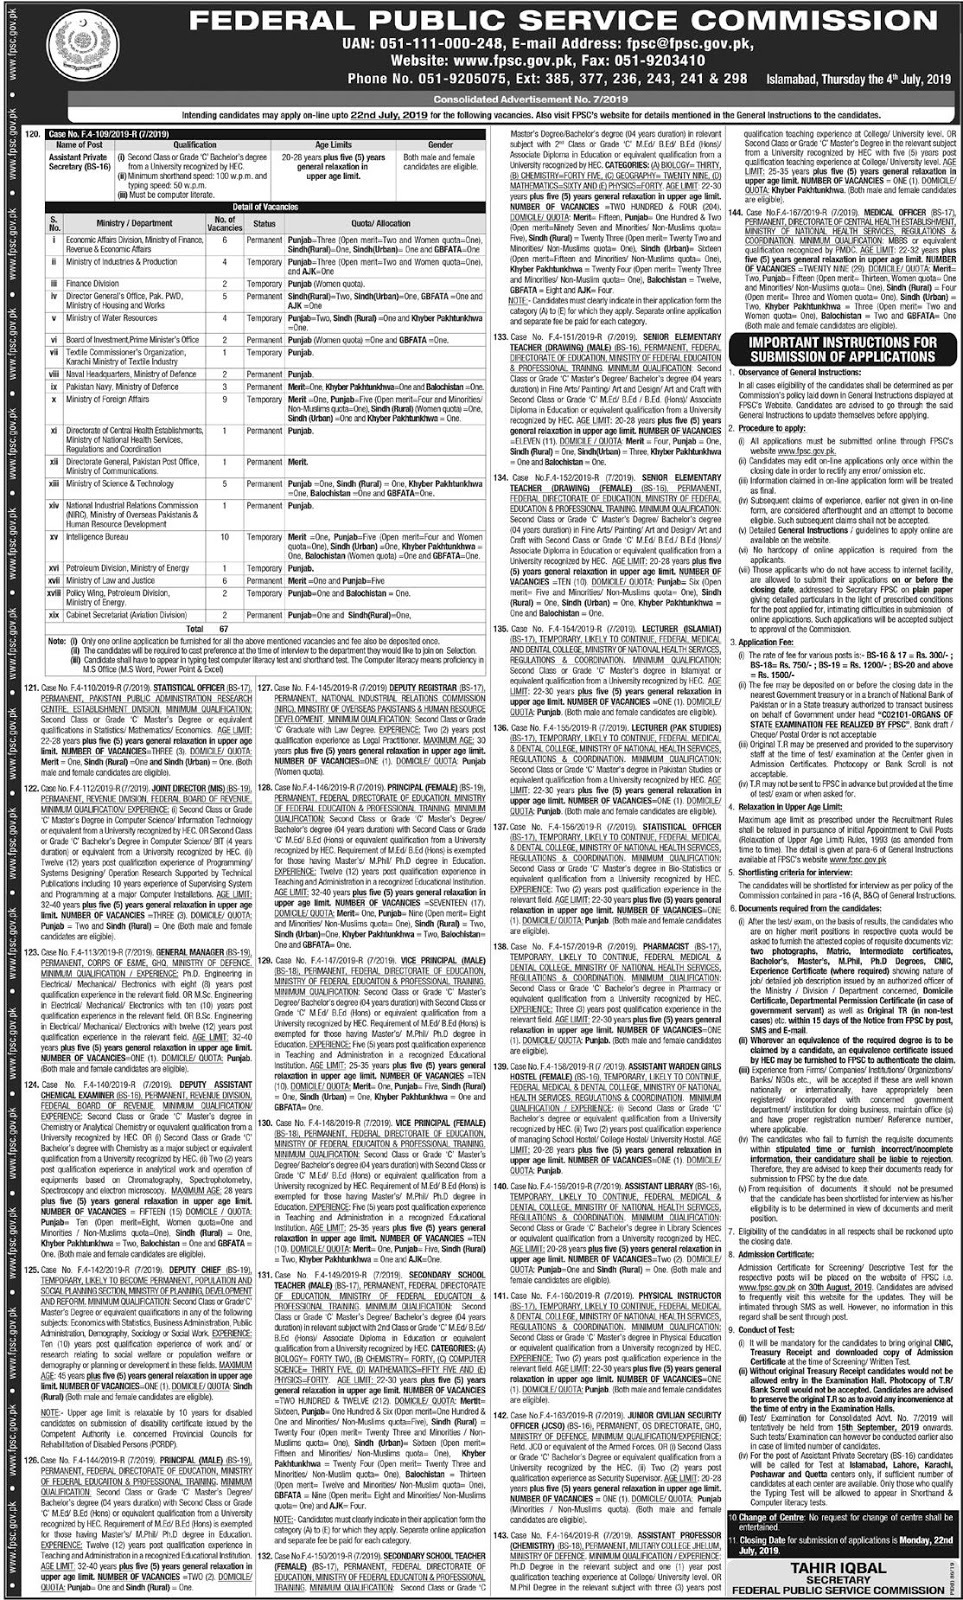 600+ Government Jobs in FPSC for Teachers, SST, Lecturers